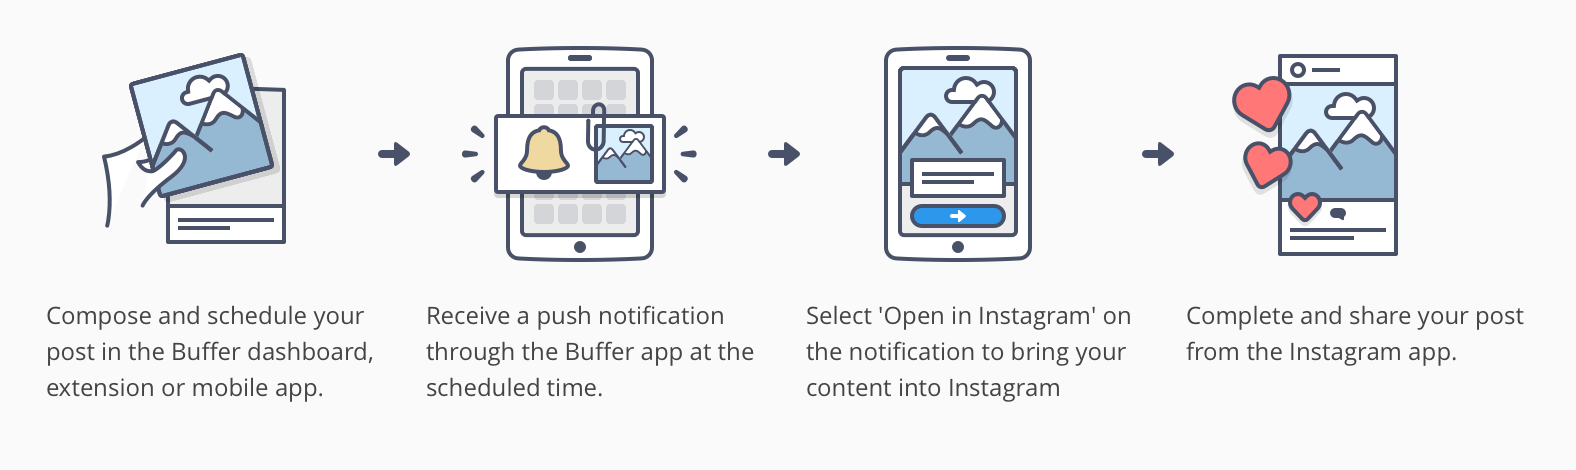 buffer-instagram-how-to